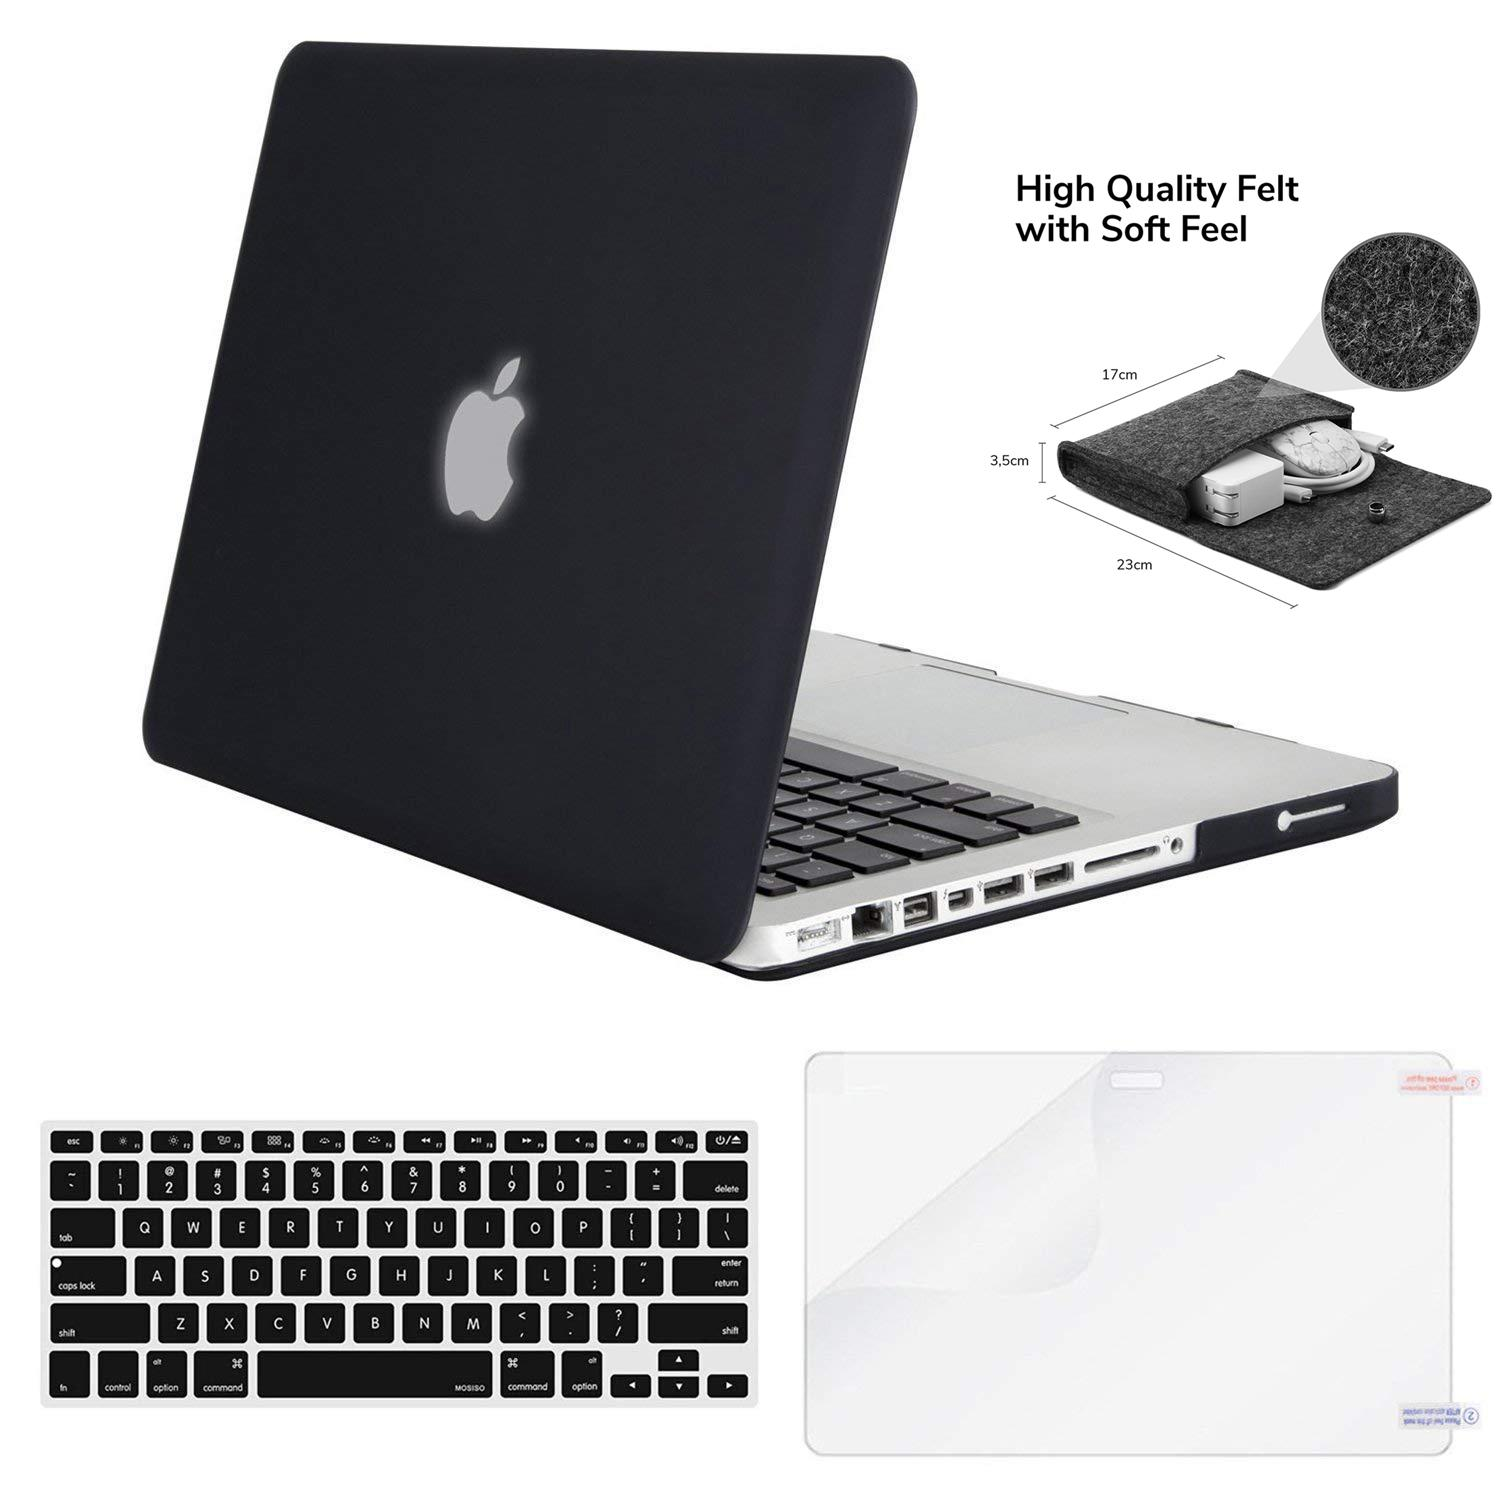 Computer Cables & Connectors Lovely Bottom Case Cover Rubber Feet Screw For Macbook Pro Retina A1398 A1502 A1425 Modern Techniques